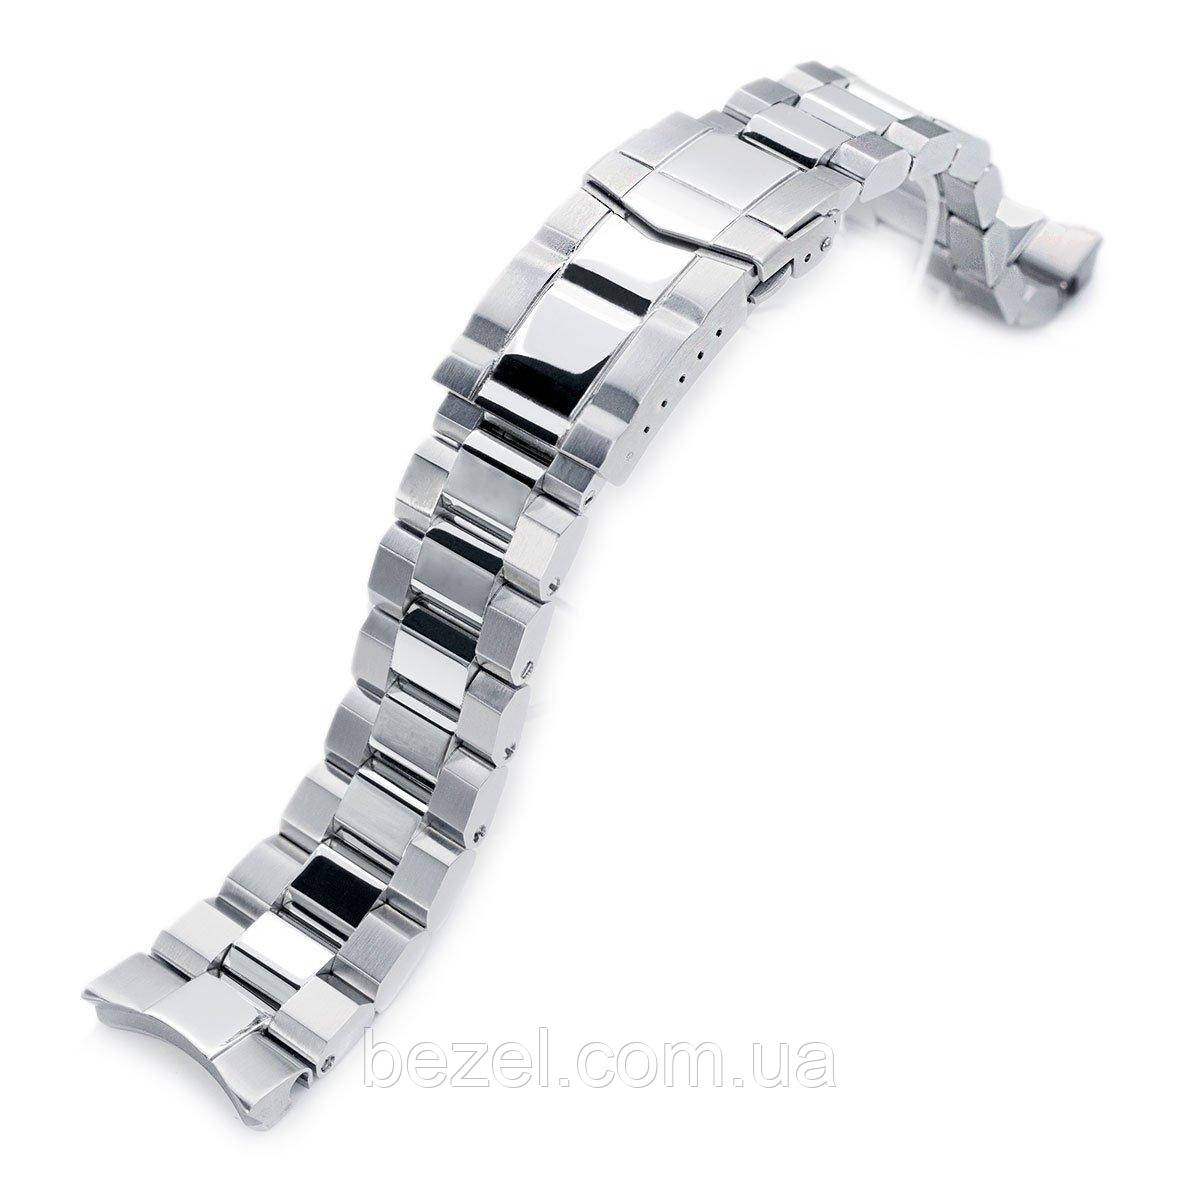 22mm Hexad Oyster 316L Stainless Steel Watch Band for Seiko Samurai SRPB51, Brushed & Polished Submariner Diver Clasp